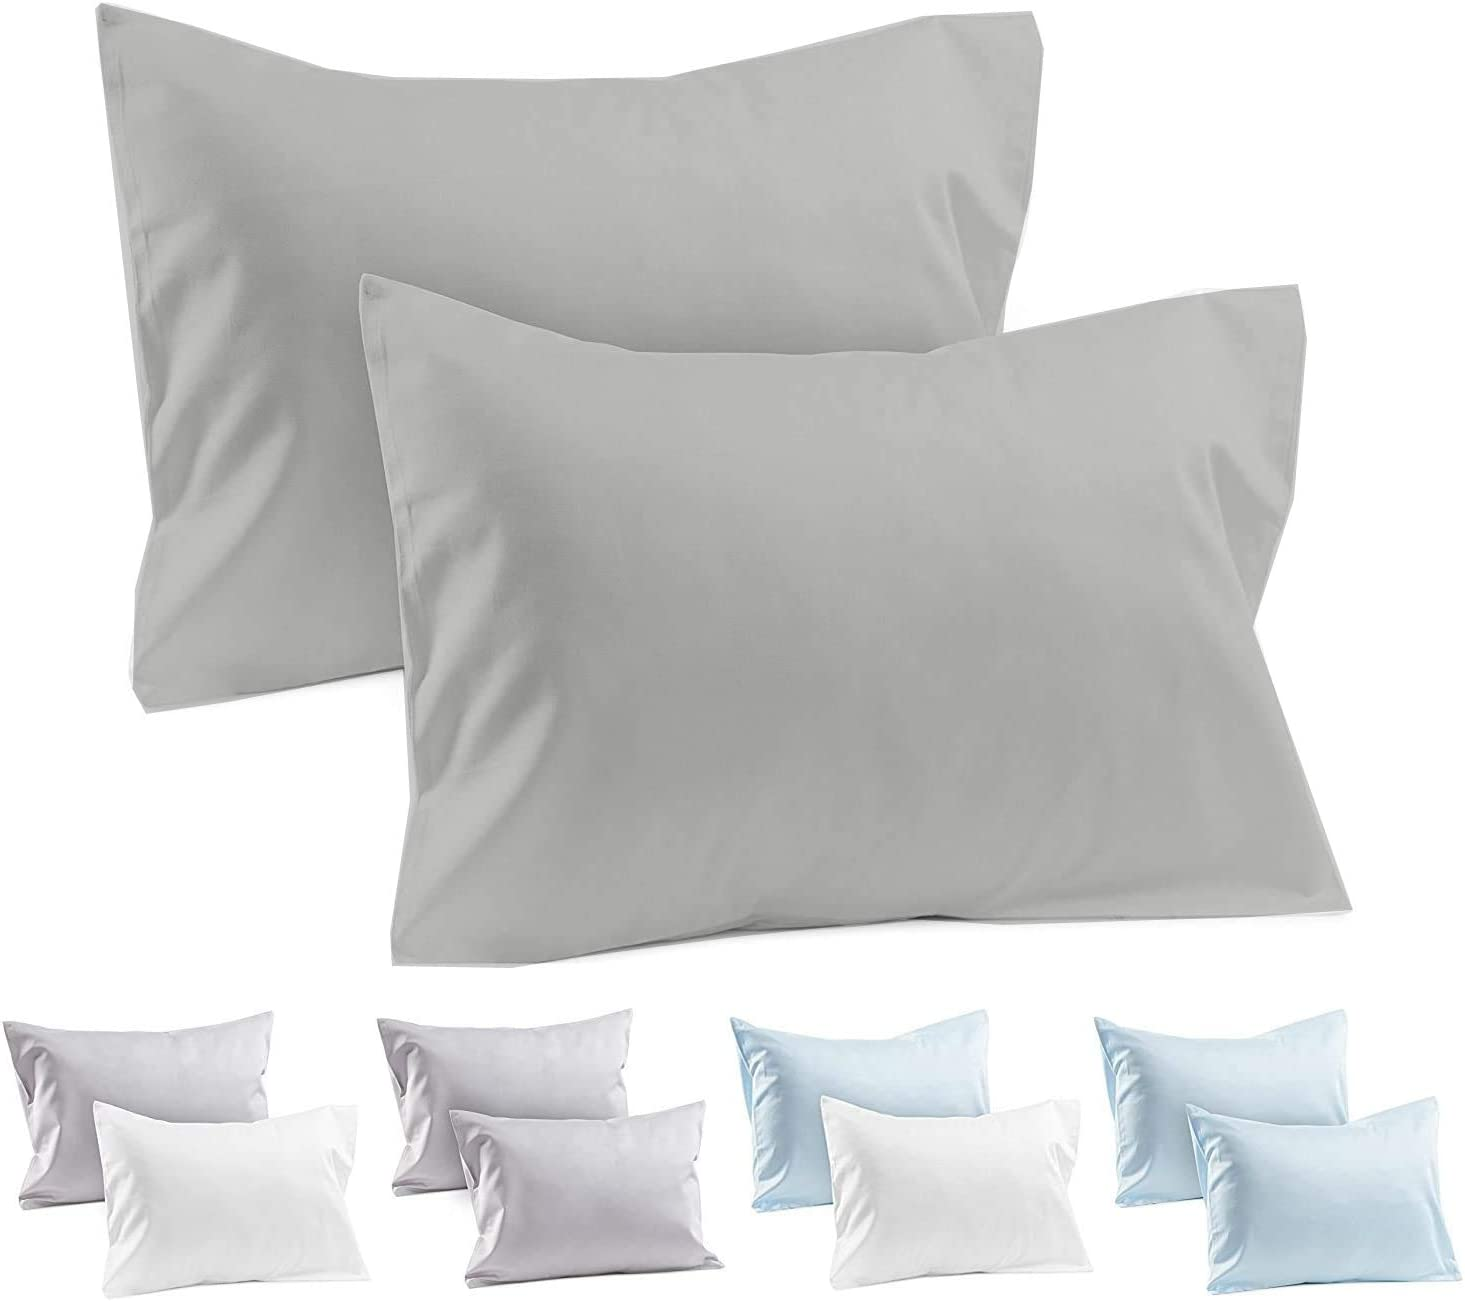 Whitecottonworld Popular brand Pillowcase Set of 2 Inch Toddler 12x16 6 Travel Outlet sale feature